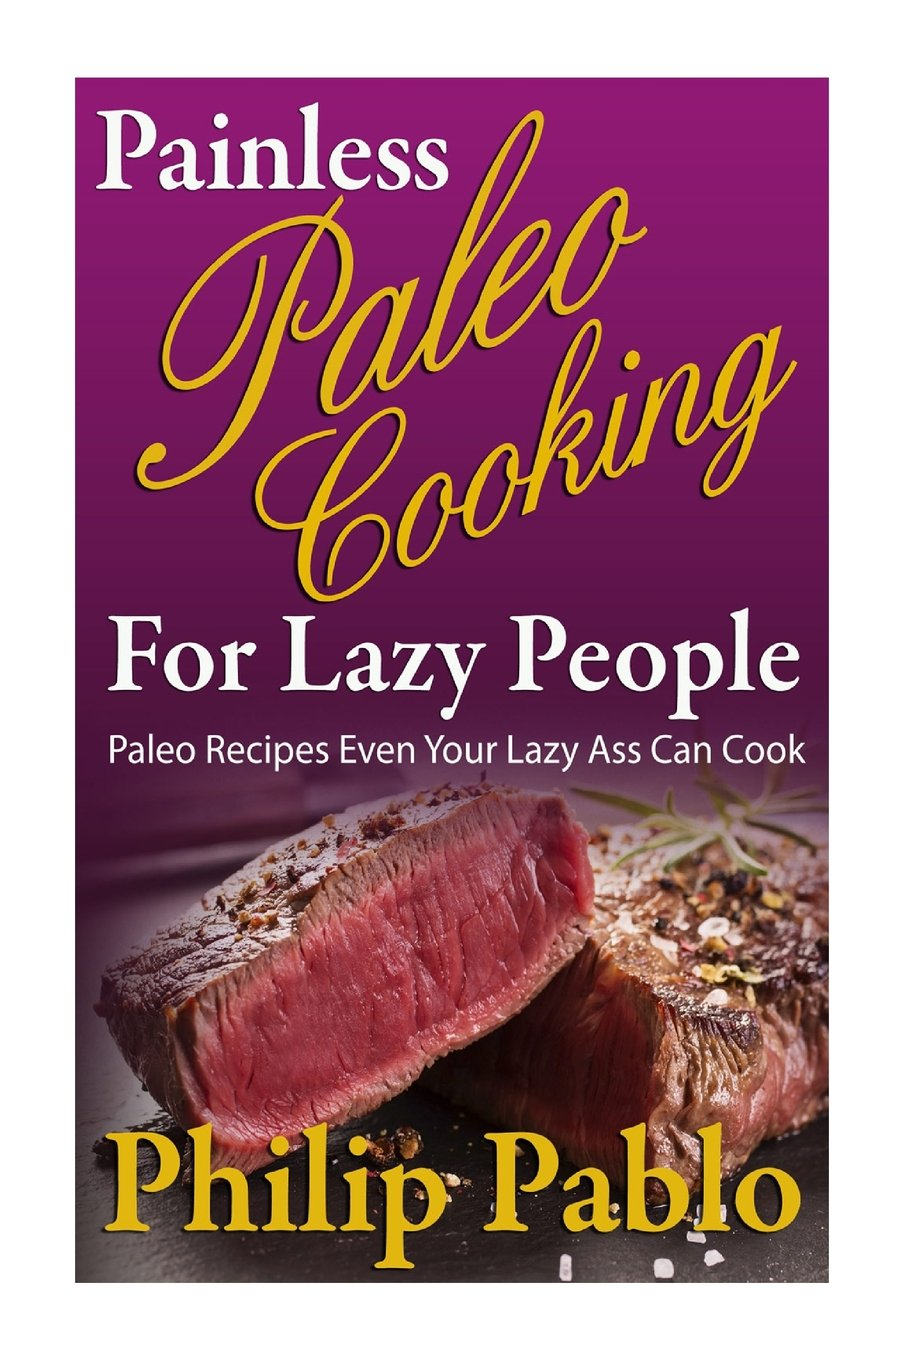 Painless Paleo Cooking  For Lazy People: Paleo Recipes Even Your Lazy Ass Can Co pdf epub